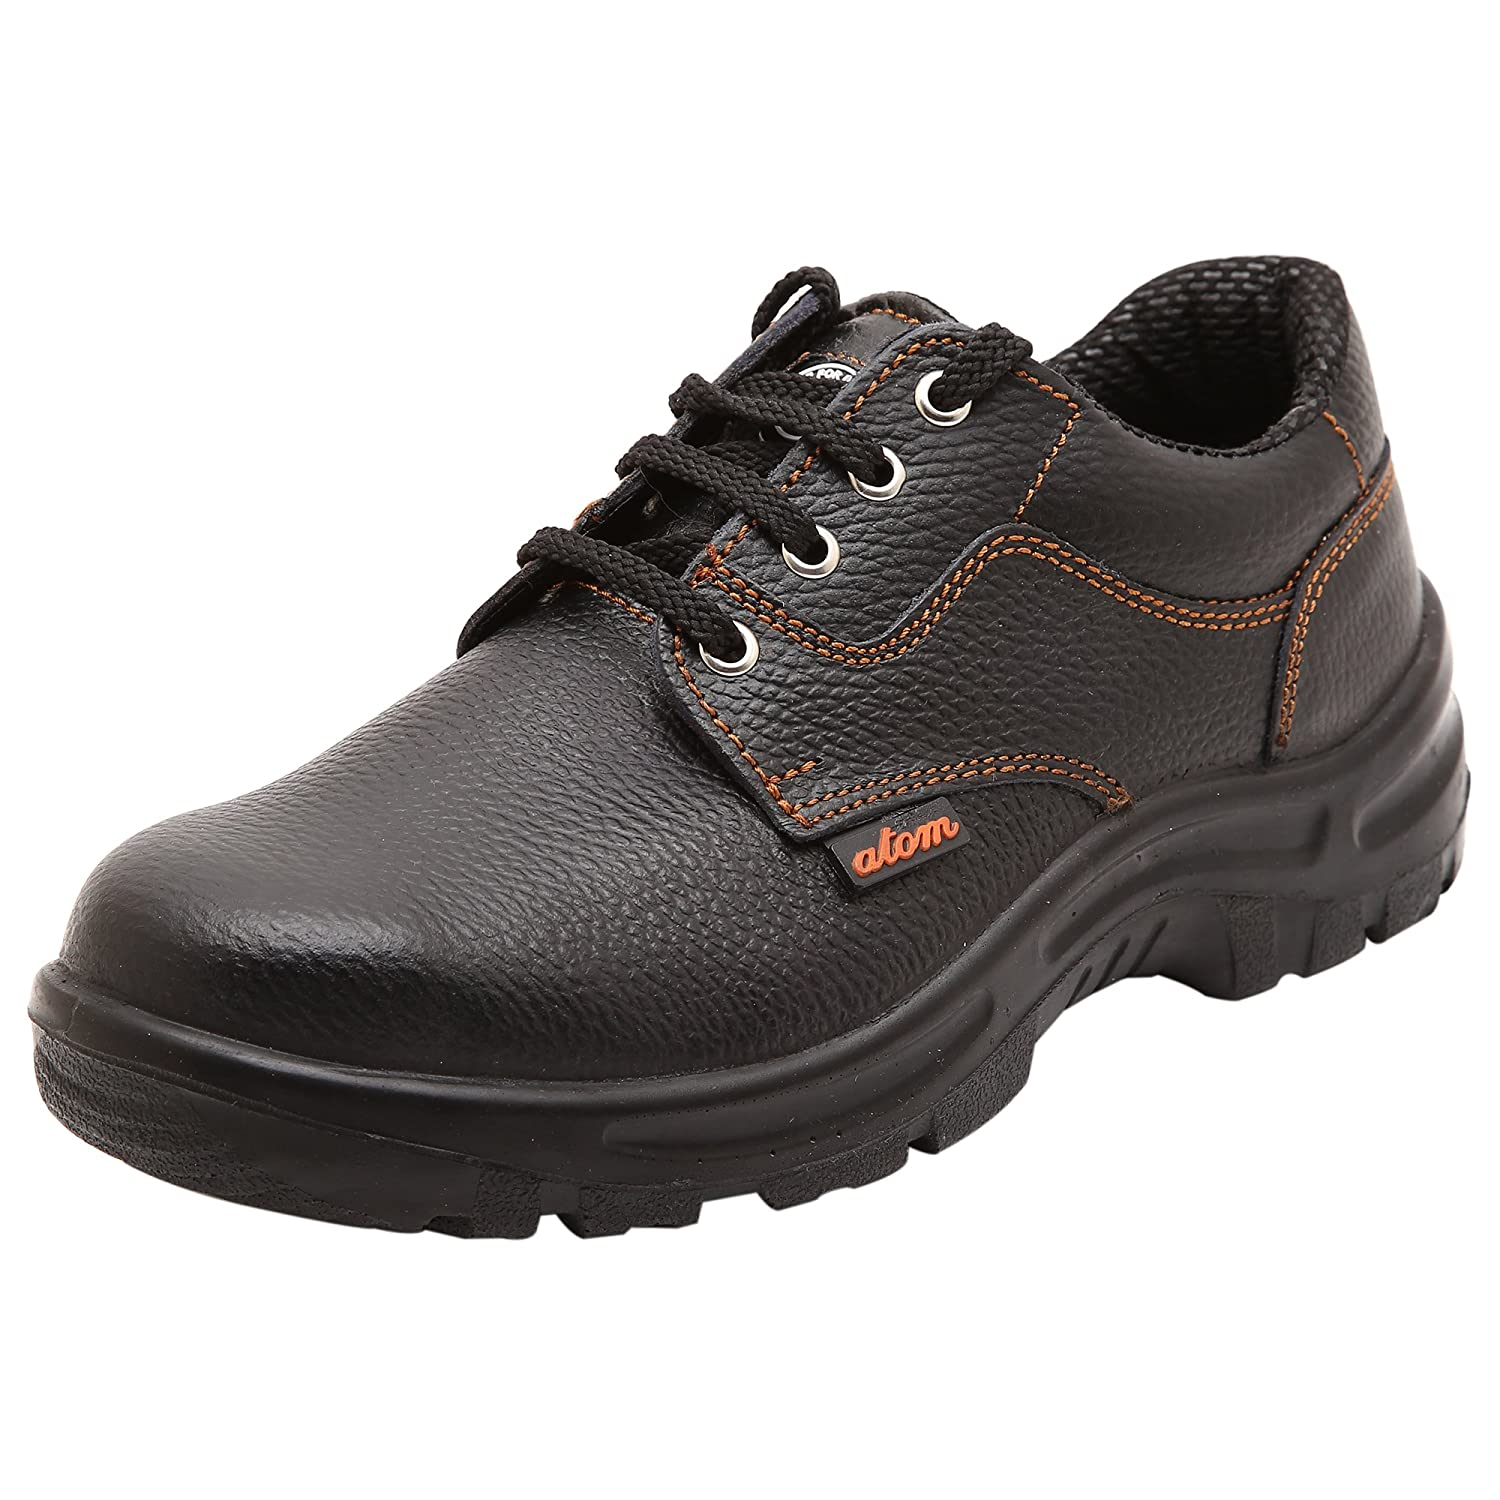 556d1ef4932e6c ACME Atom Genuine Leather Black Safety Shoes for Men (7): Amazon.in:  Amazon.in